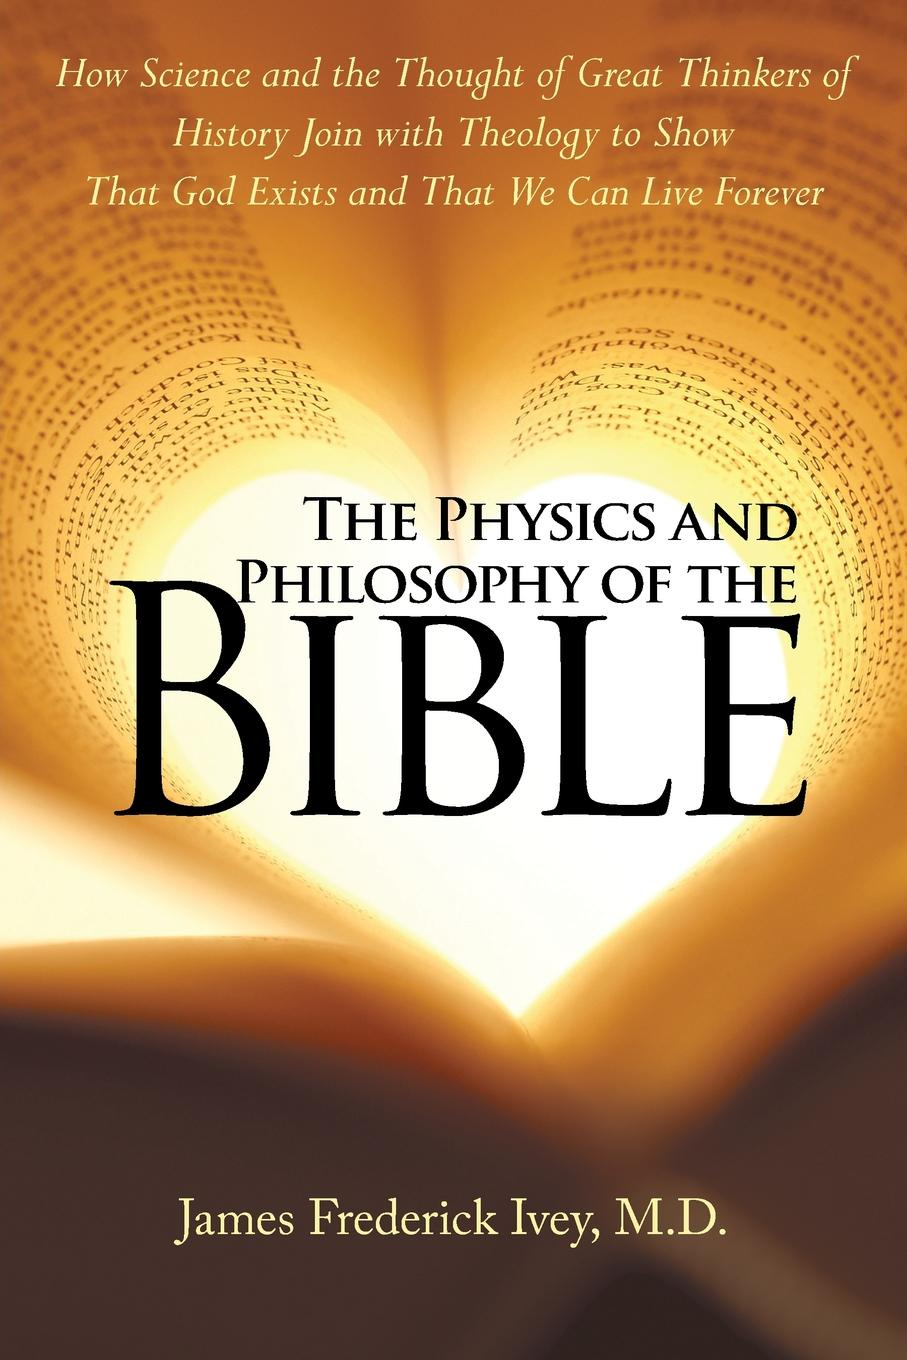 M.D. James Frederick Ivey The Physics and Philosophy of the Bible. How Science and the Thought of Great Thinkers of History Join with Theology to Show That God Exists and That We Can Live Forever history and philosophy of physics in the south cone